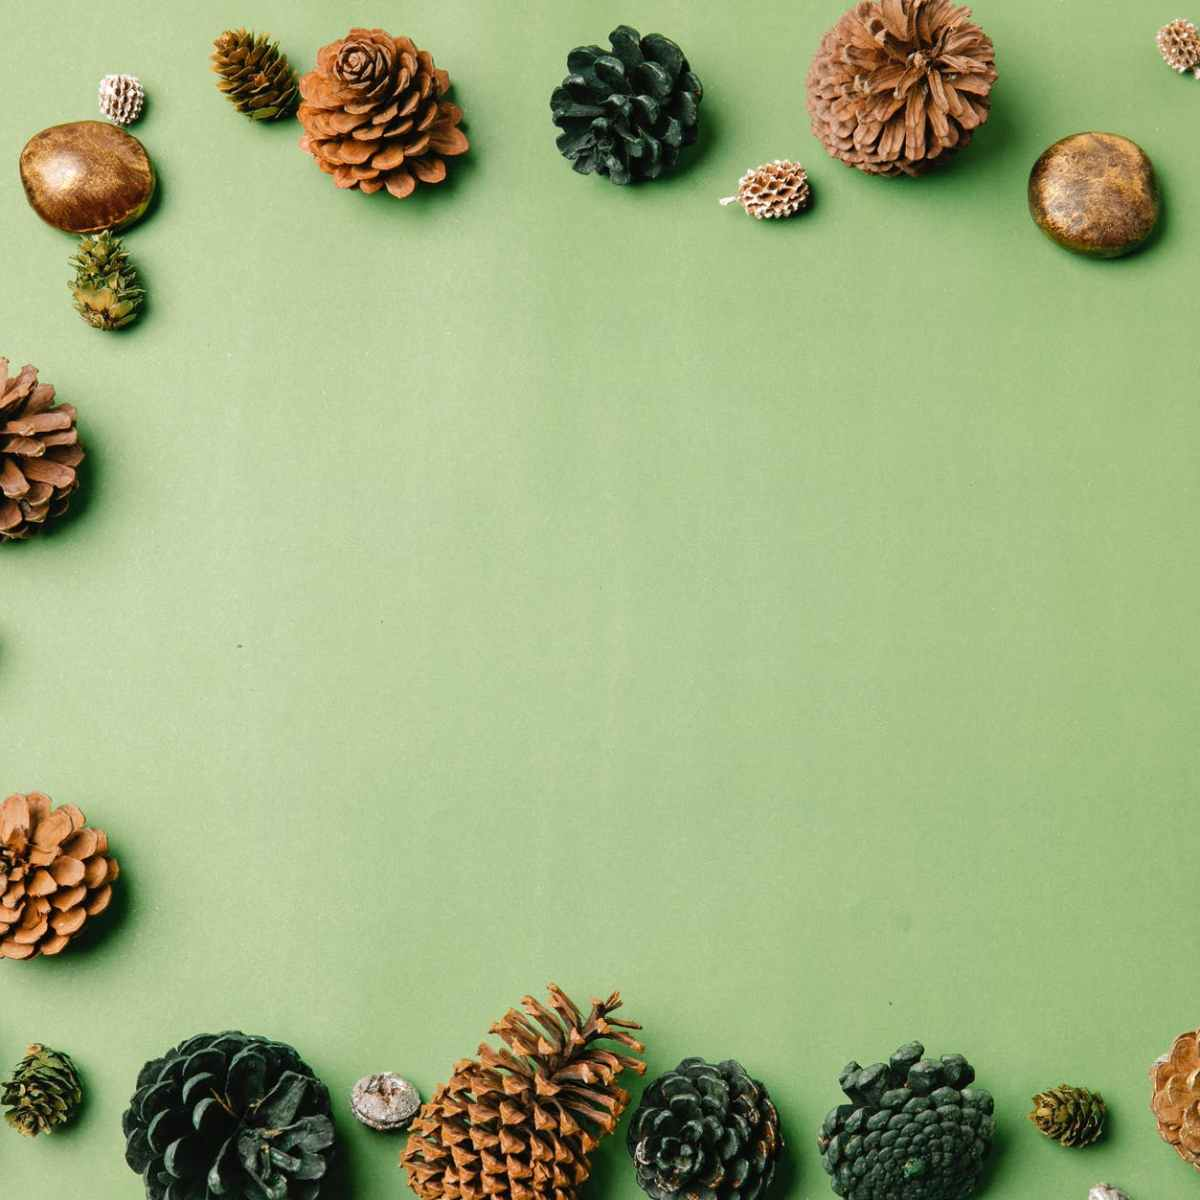 various natural pine cones on green background